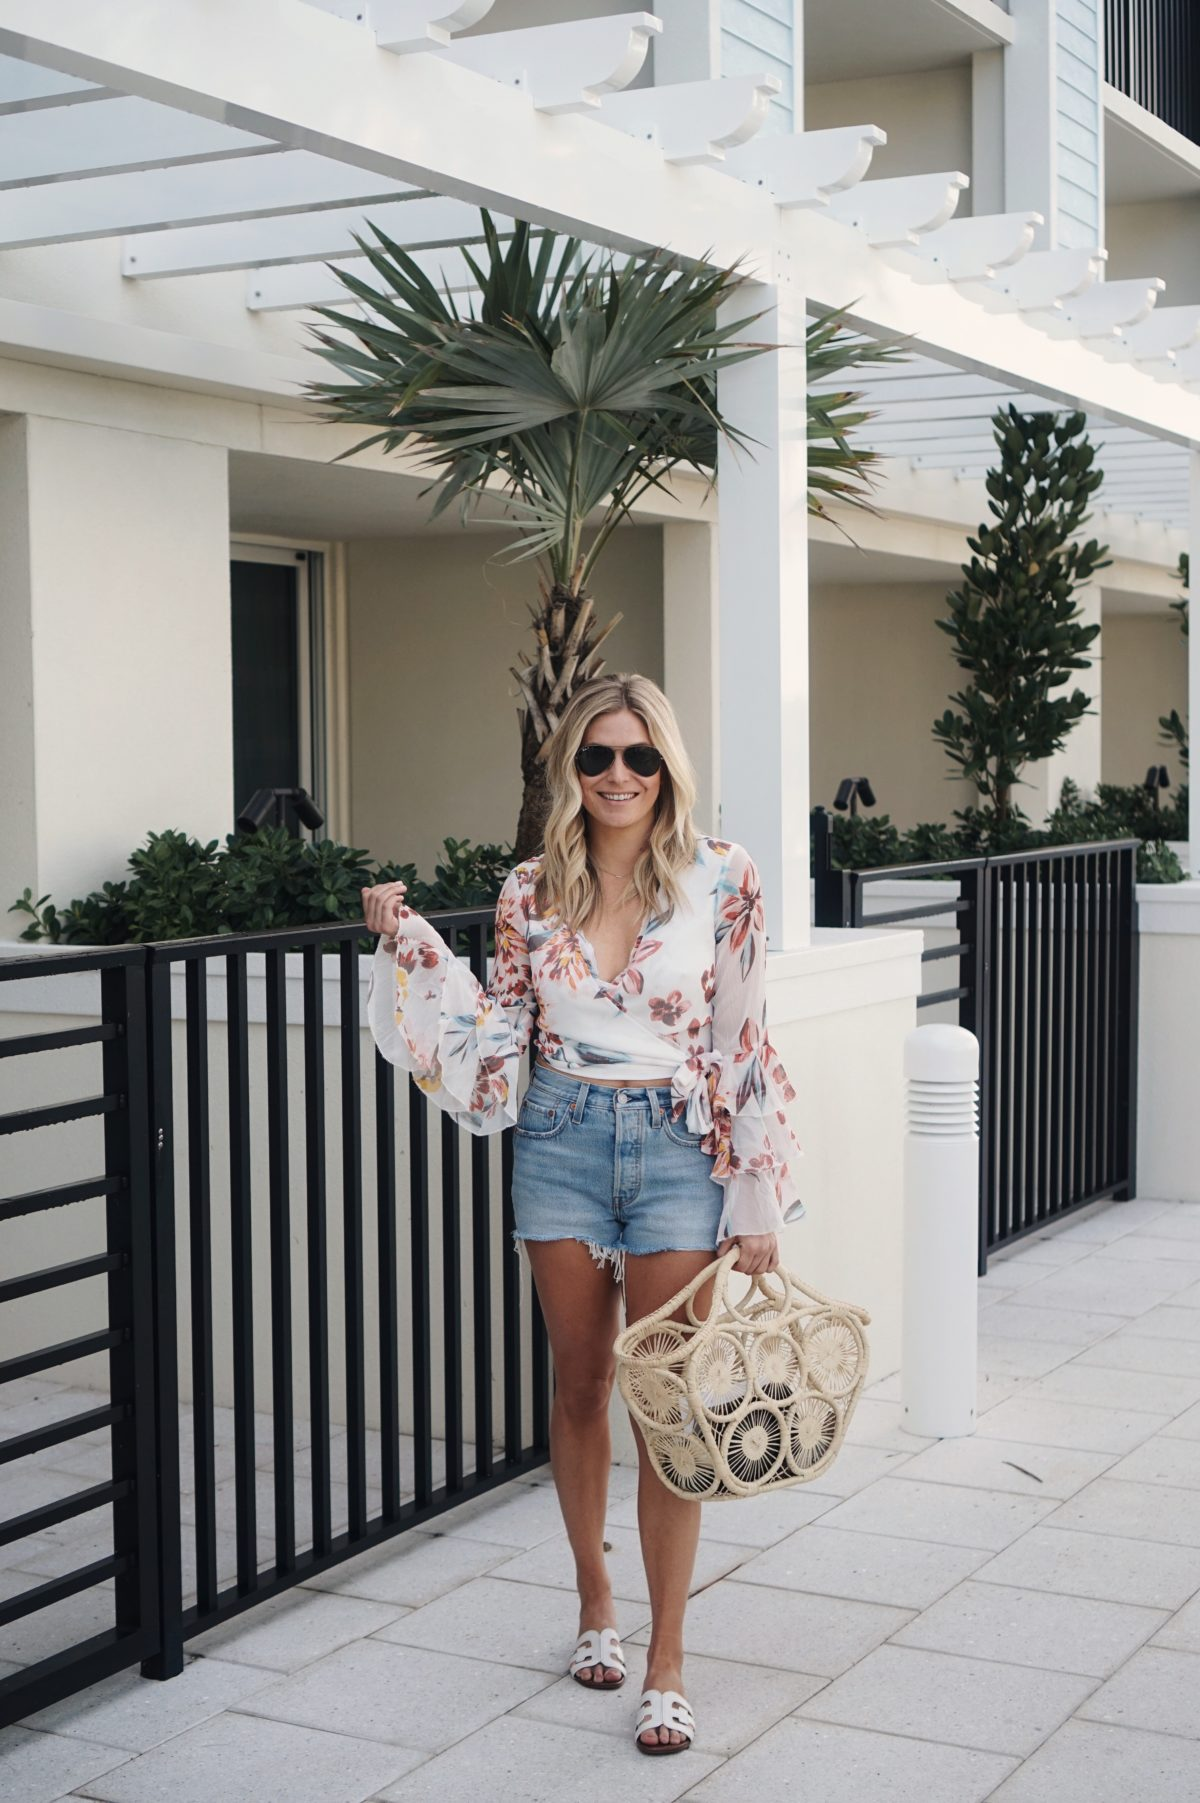 denim shorts paired with floral crop top - Florida Beach Outfits